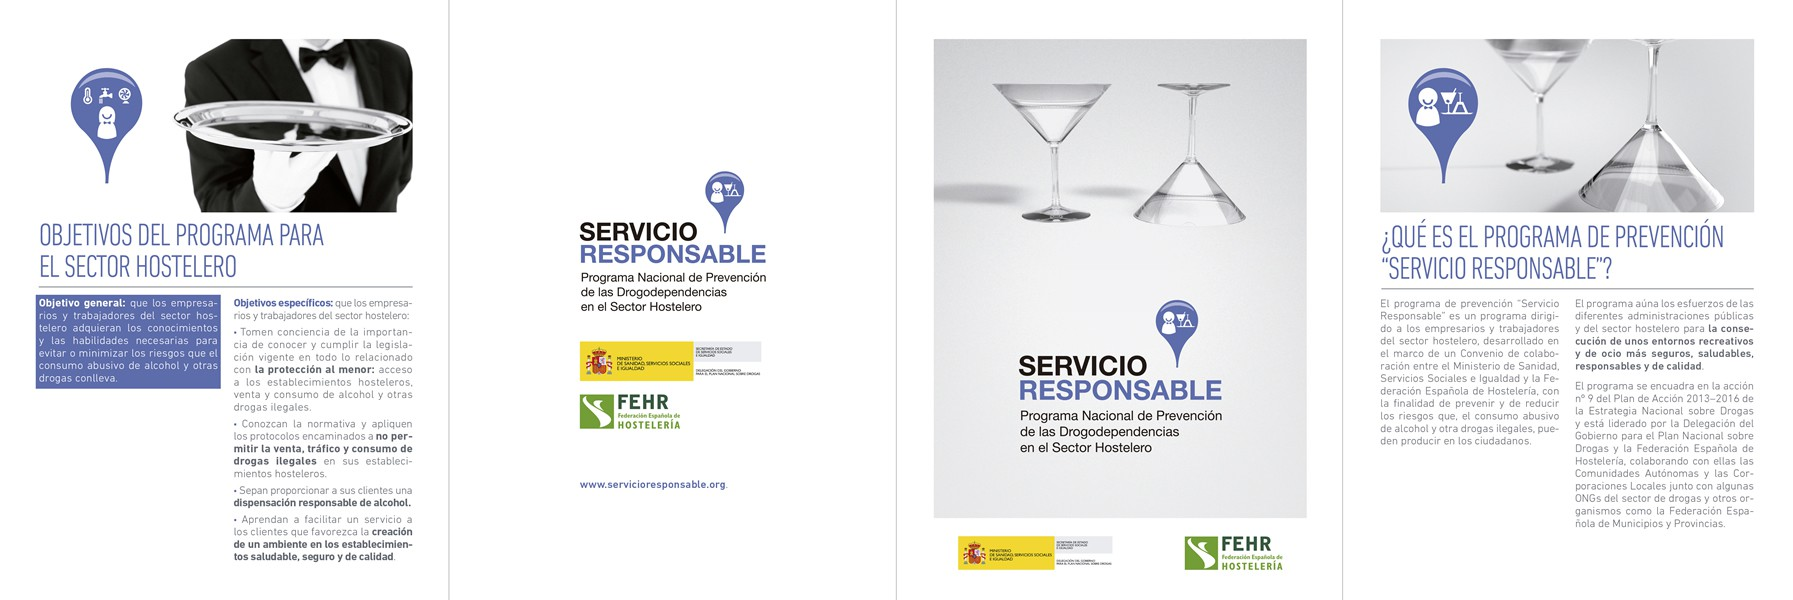 folleto servicio responsable 1